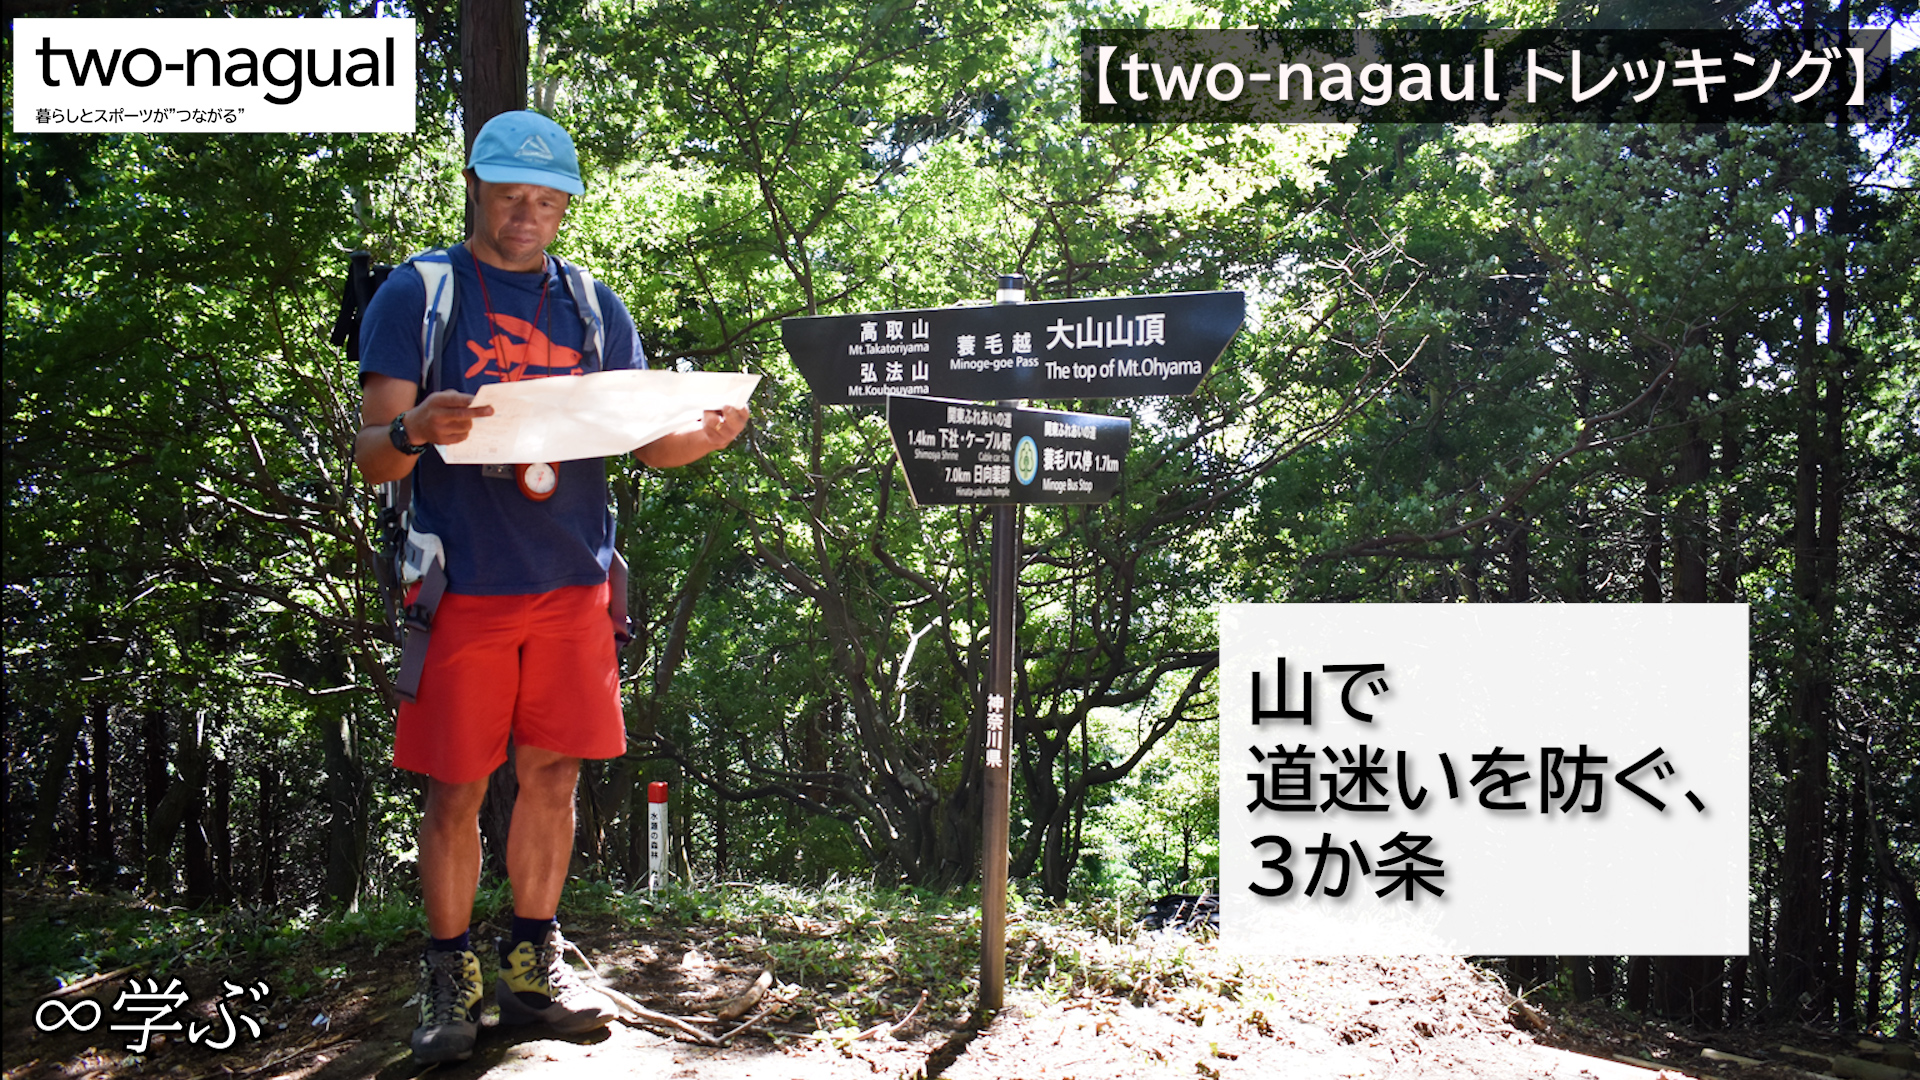 <small>【two-nagual トレッキング】</small><br />山で道迷いを防ぐ、3か条